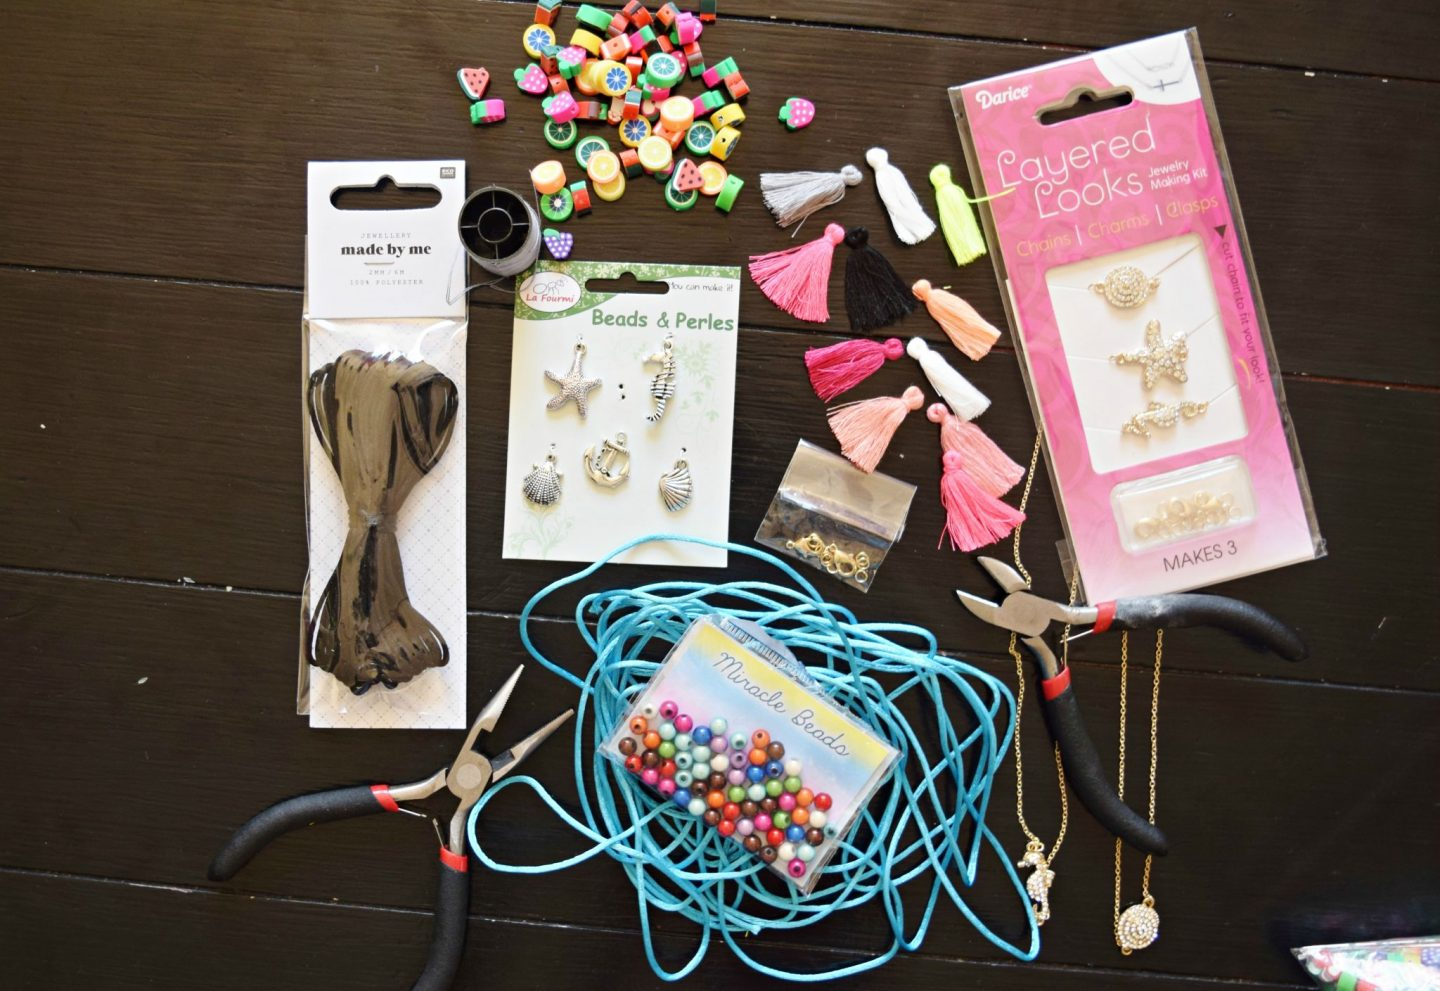 hobbycraft jewellery making supplies